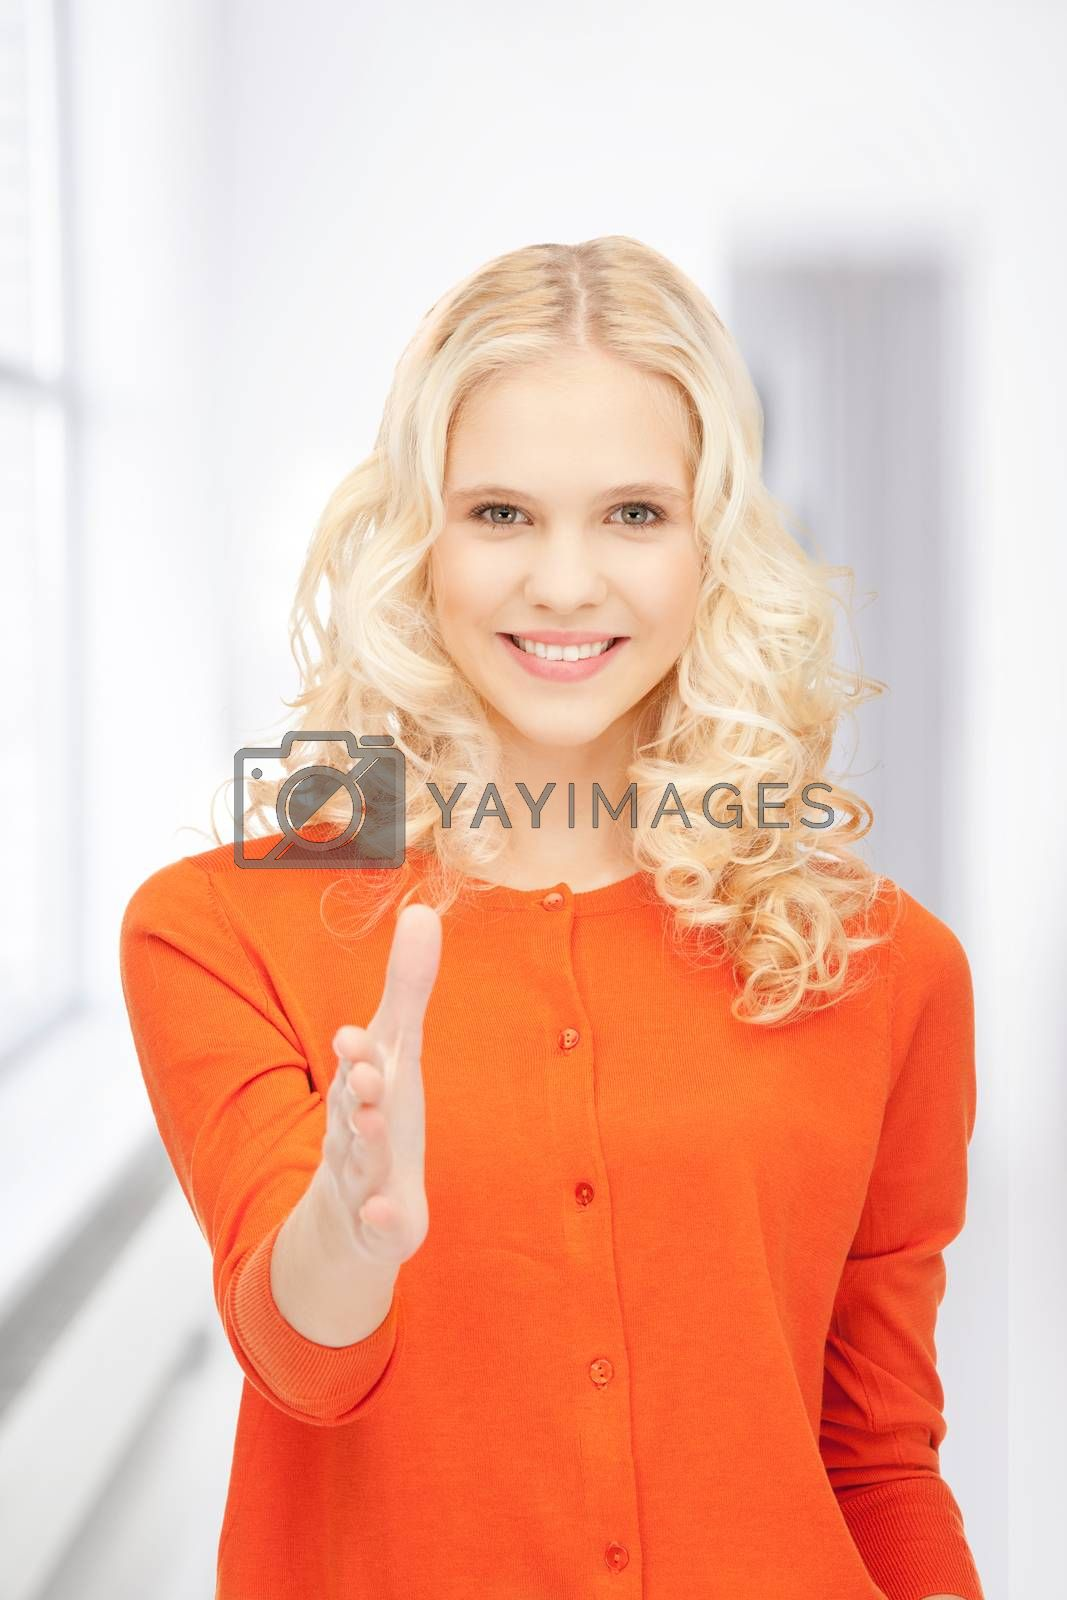 woman with an open hand ready for handshake by dolgachov